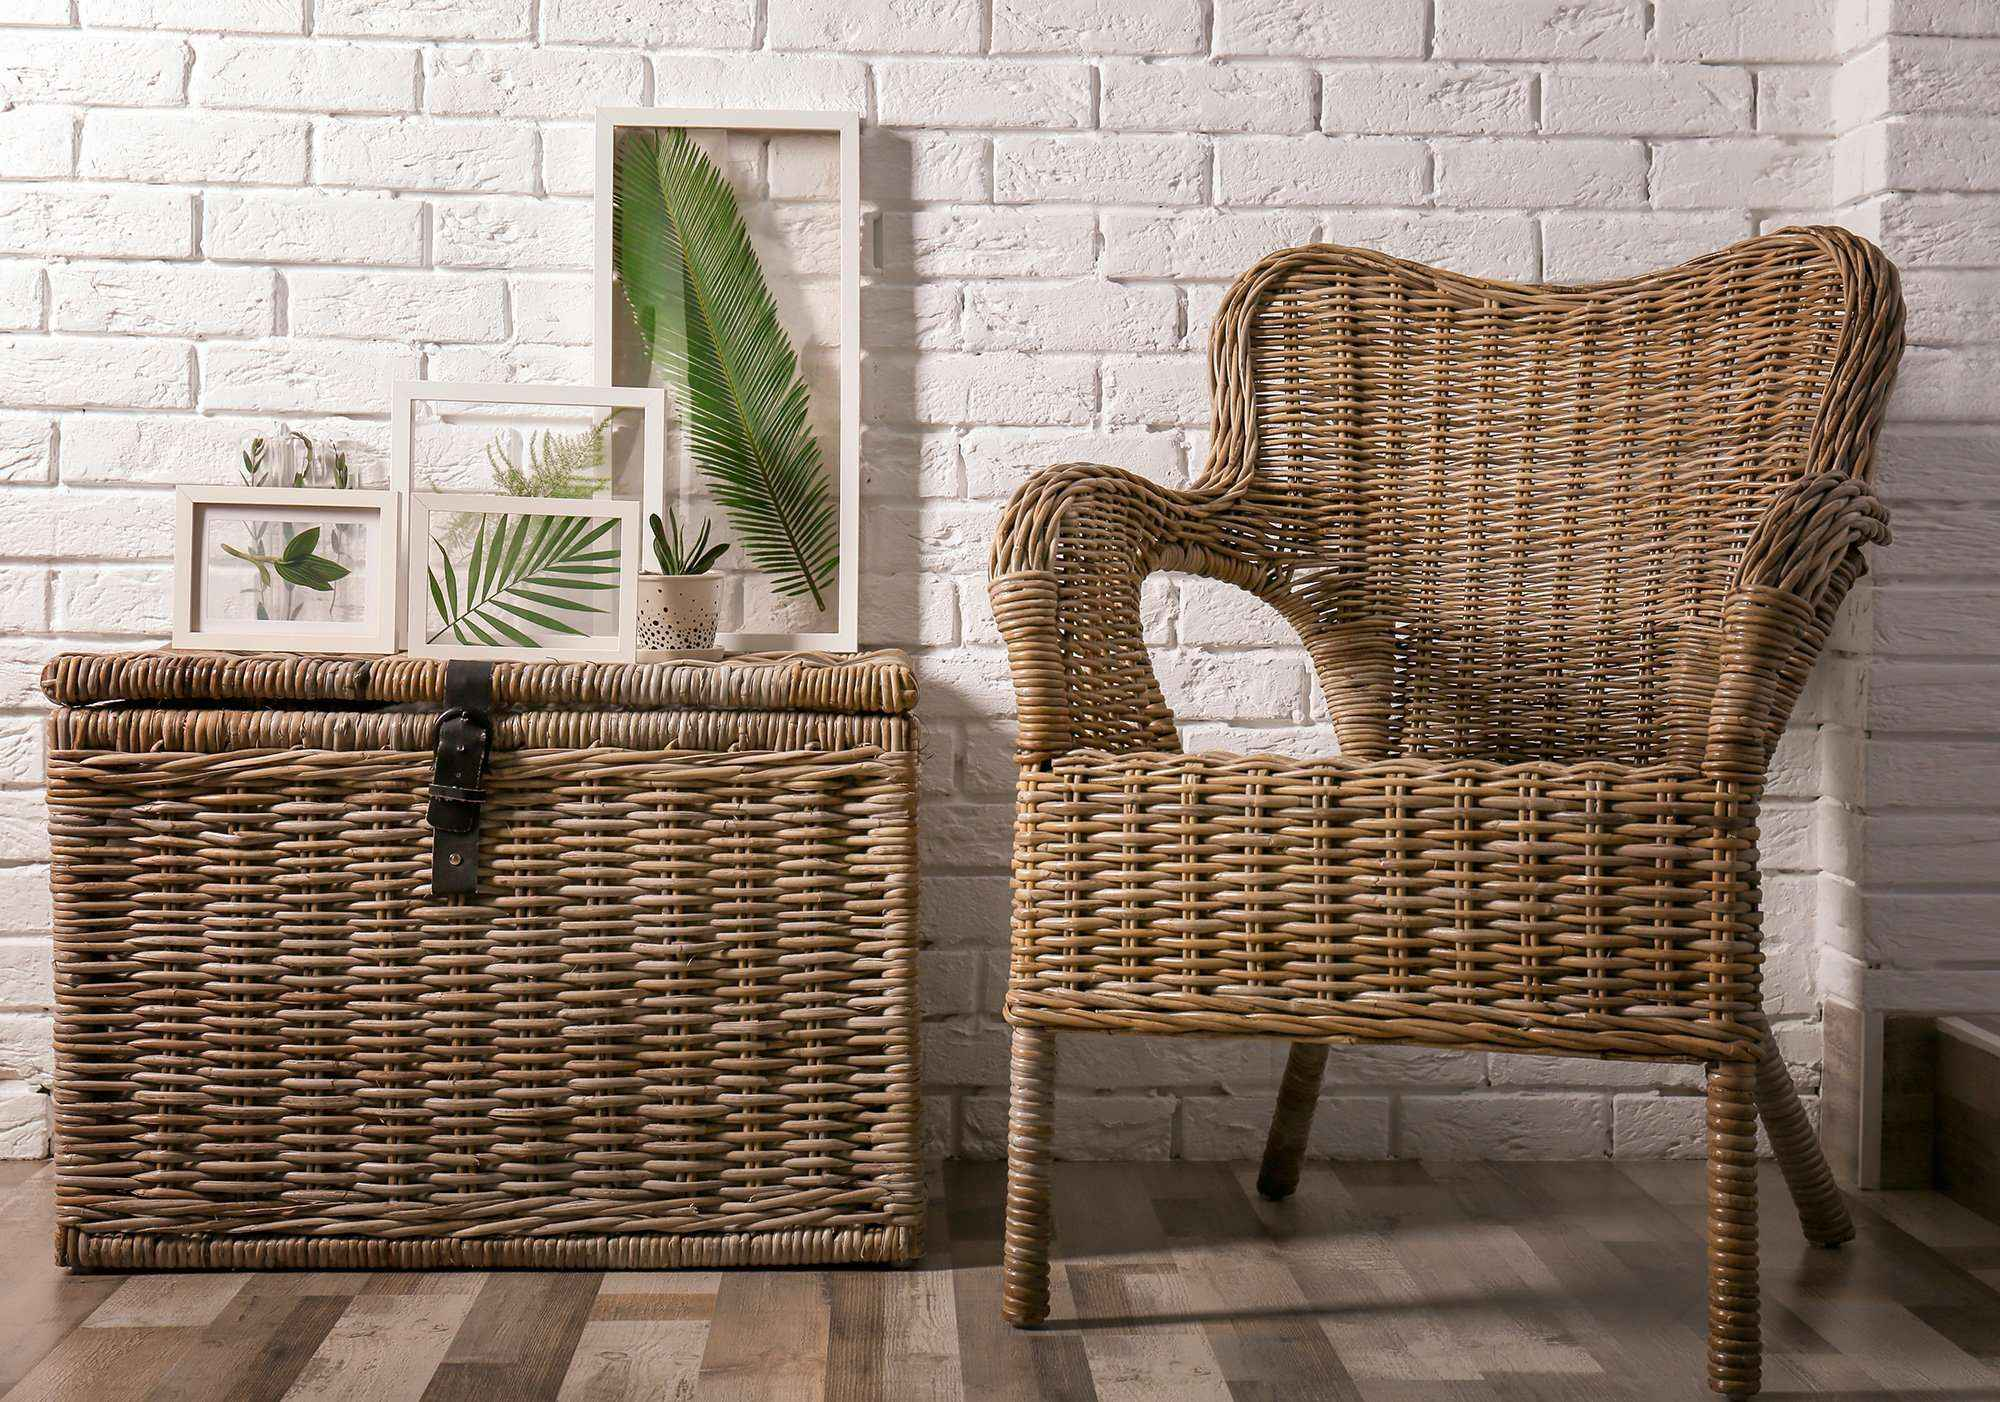 Portsea Furnishings Supply Cane Furniture Online In Australia Browse Our Wide Range Of Cane Home Furniture